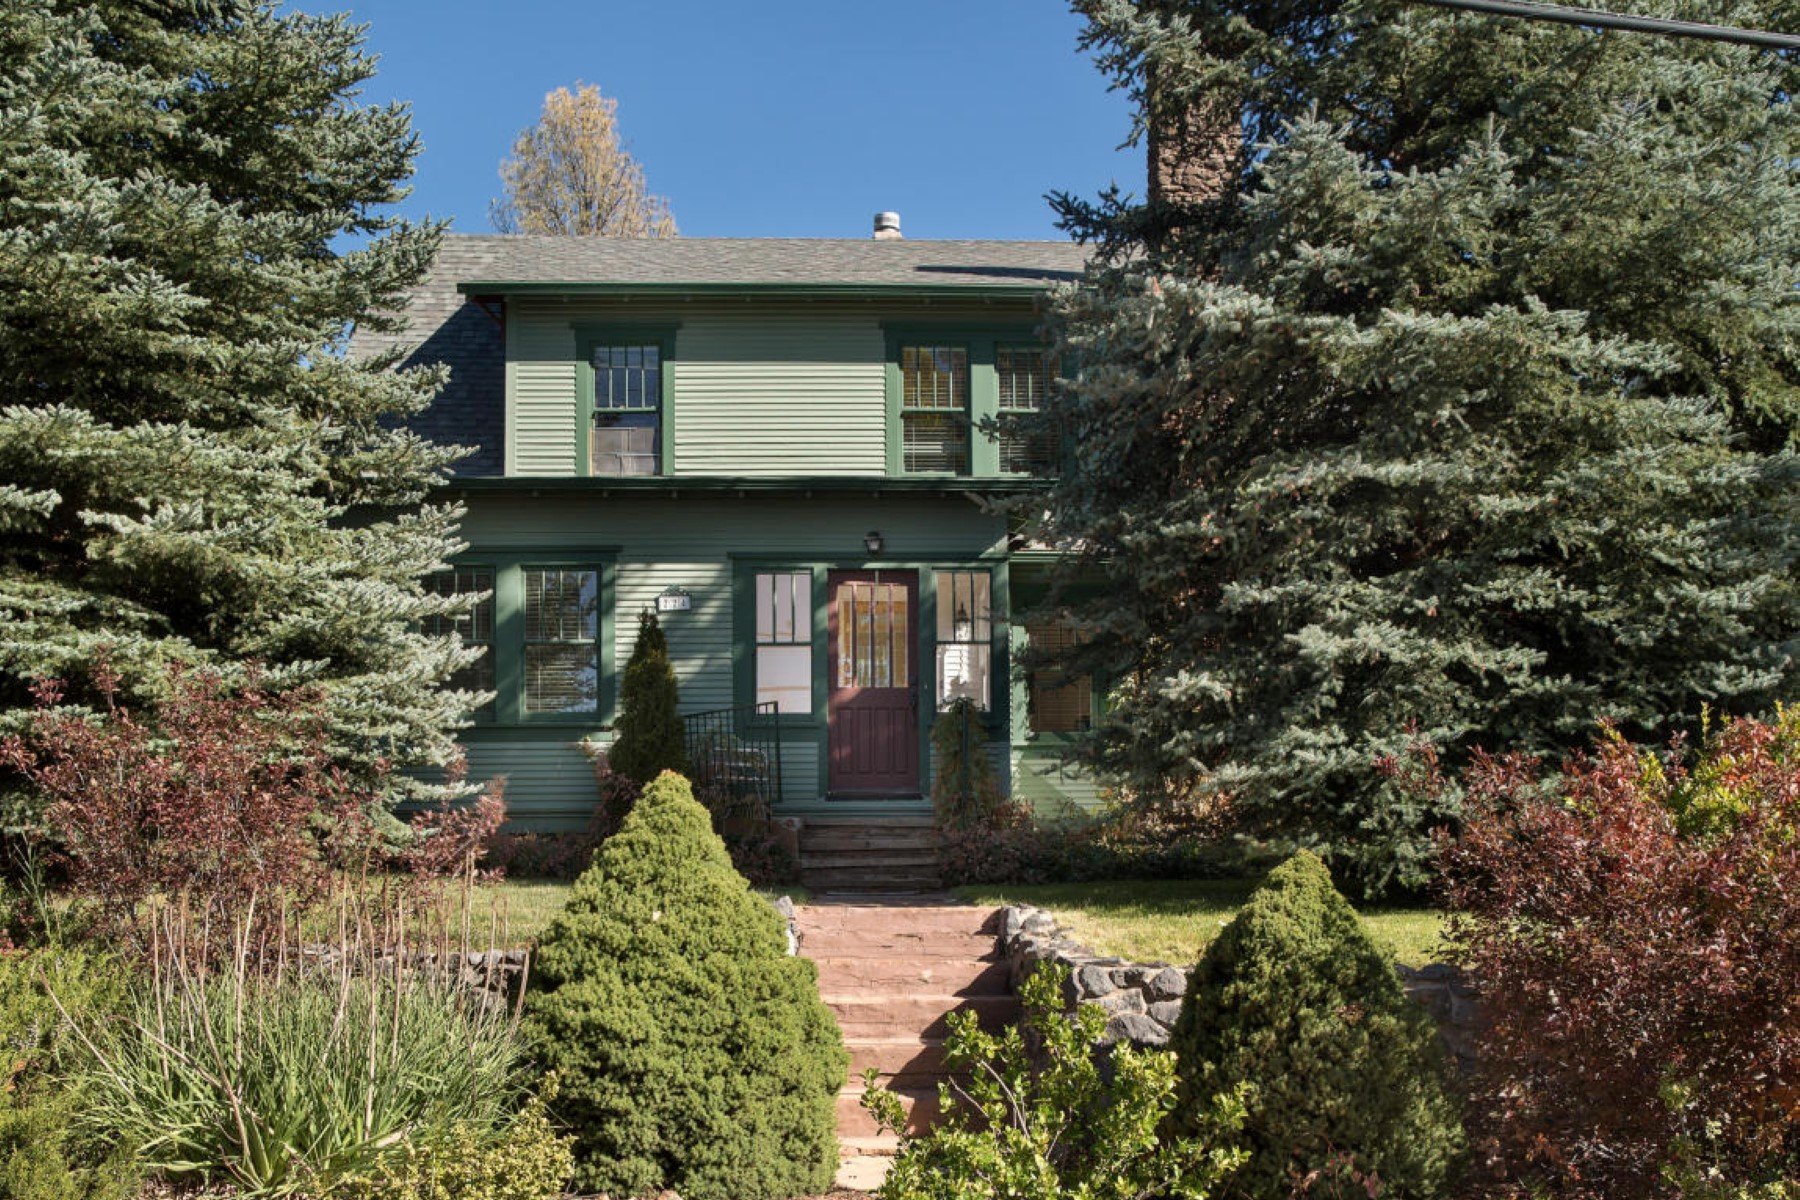 Maison unifamiliale pour l Vente à Historic downtown home 224 N Elden St Flagstaff, Arizona, 86001 États-Unis